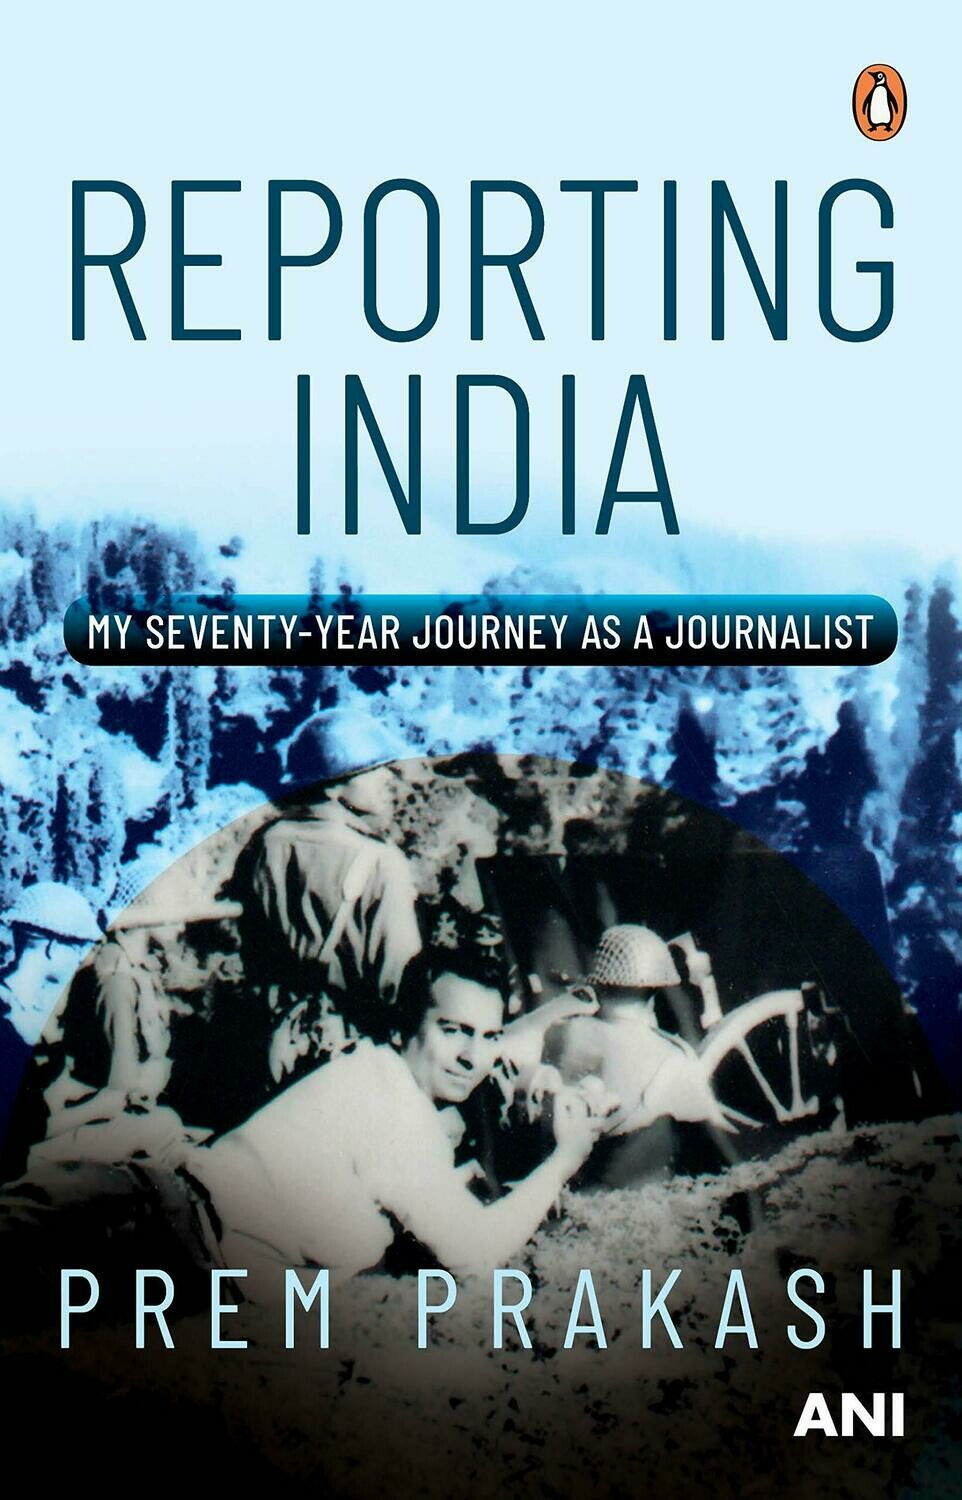 Reporting India: My Seventy-year Journey as a Journalist